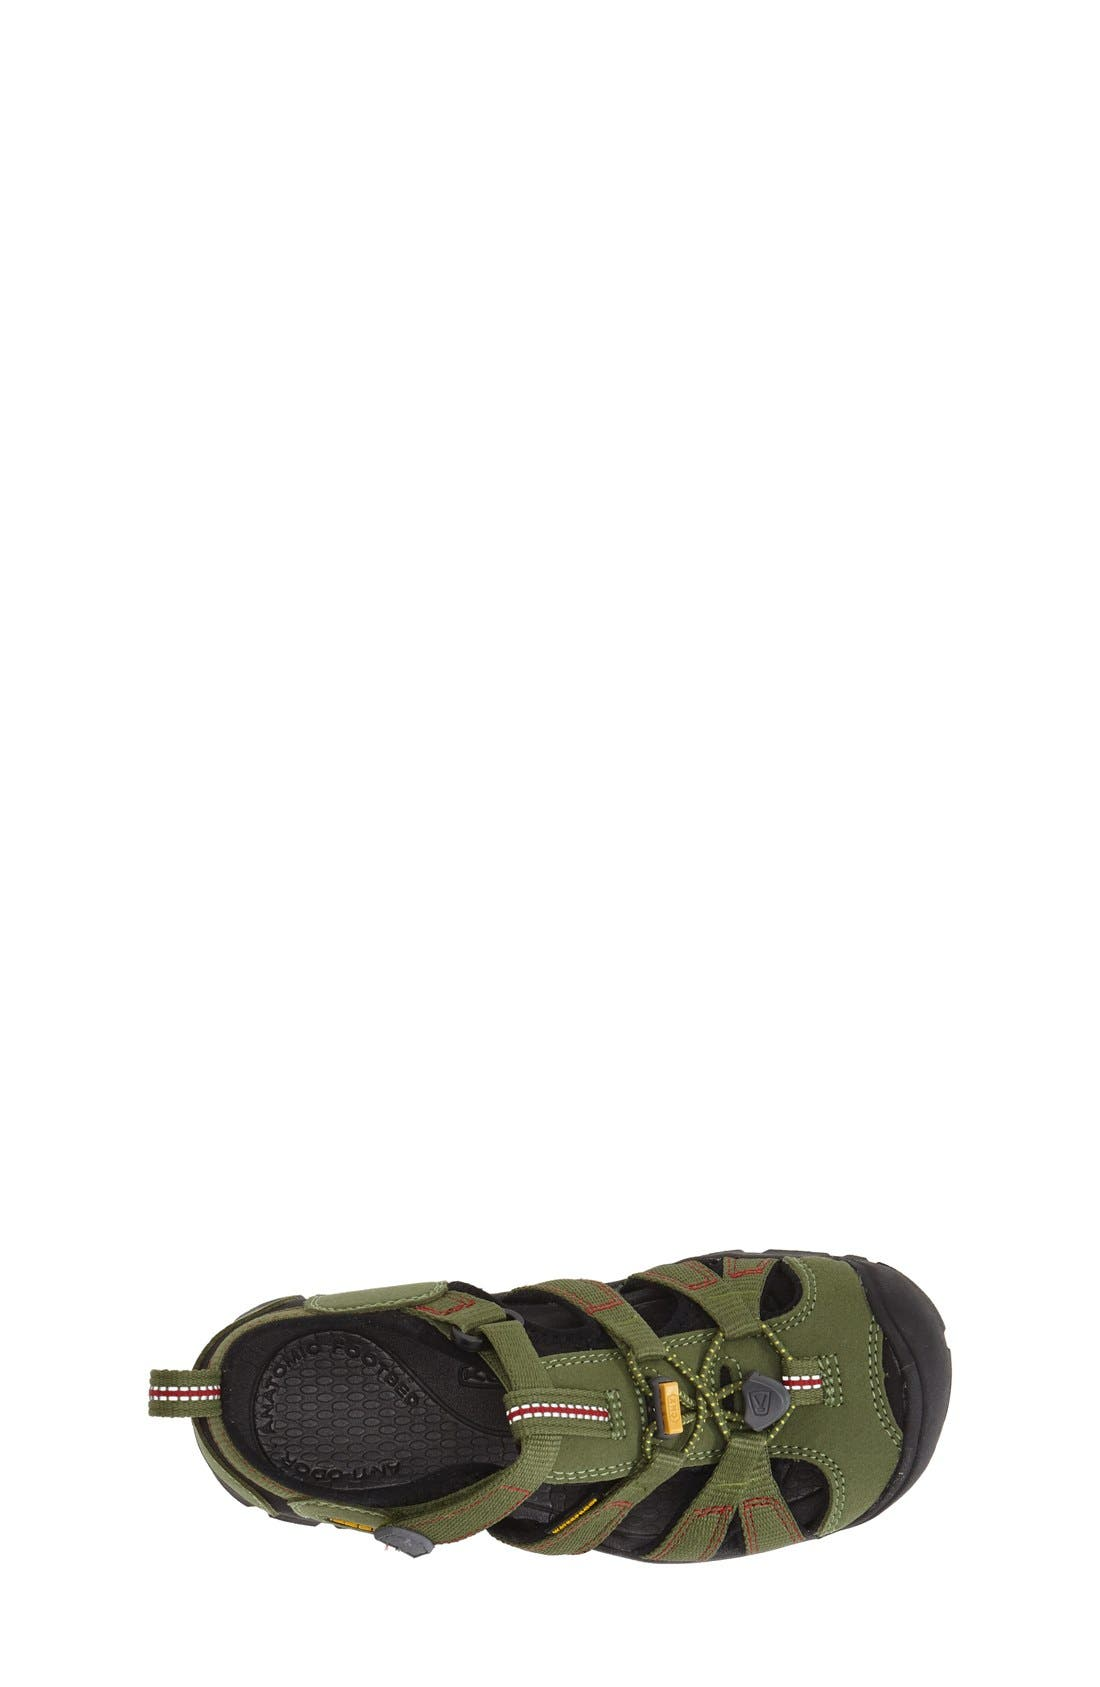 Alternate Image 3  - Keen 'Seacamp II' Waterproof Sandal (Baby, Walker, Toddler, Little Kid & Big Kid)